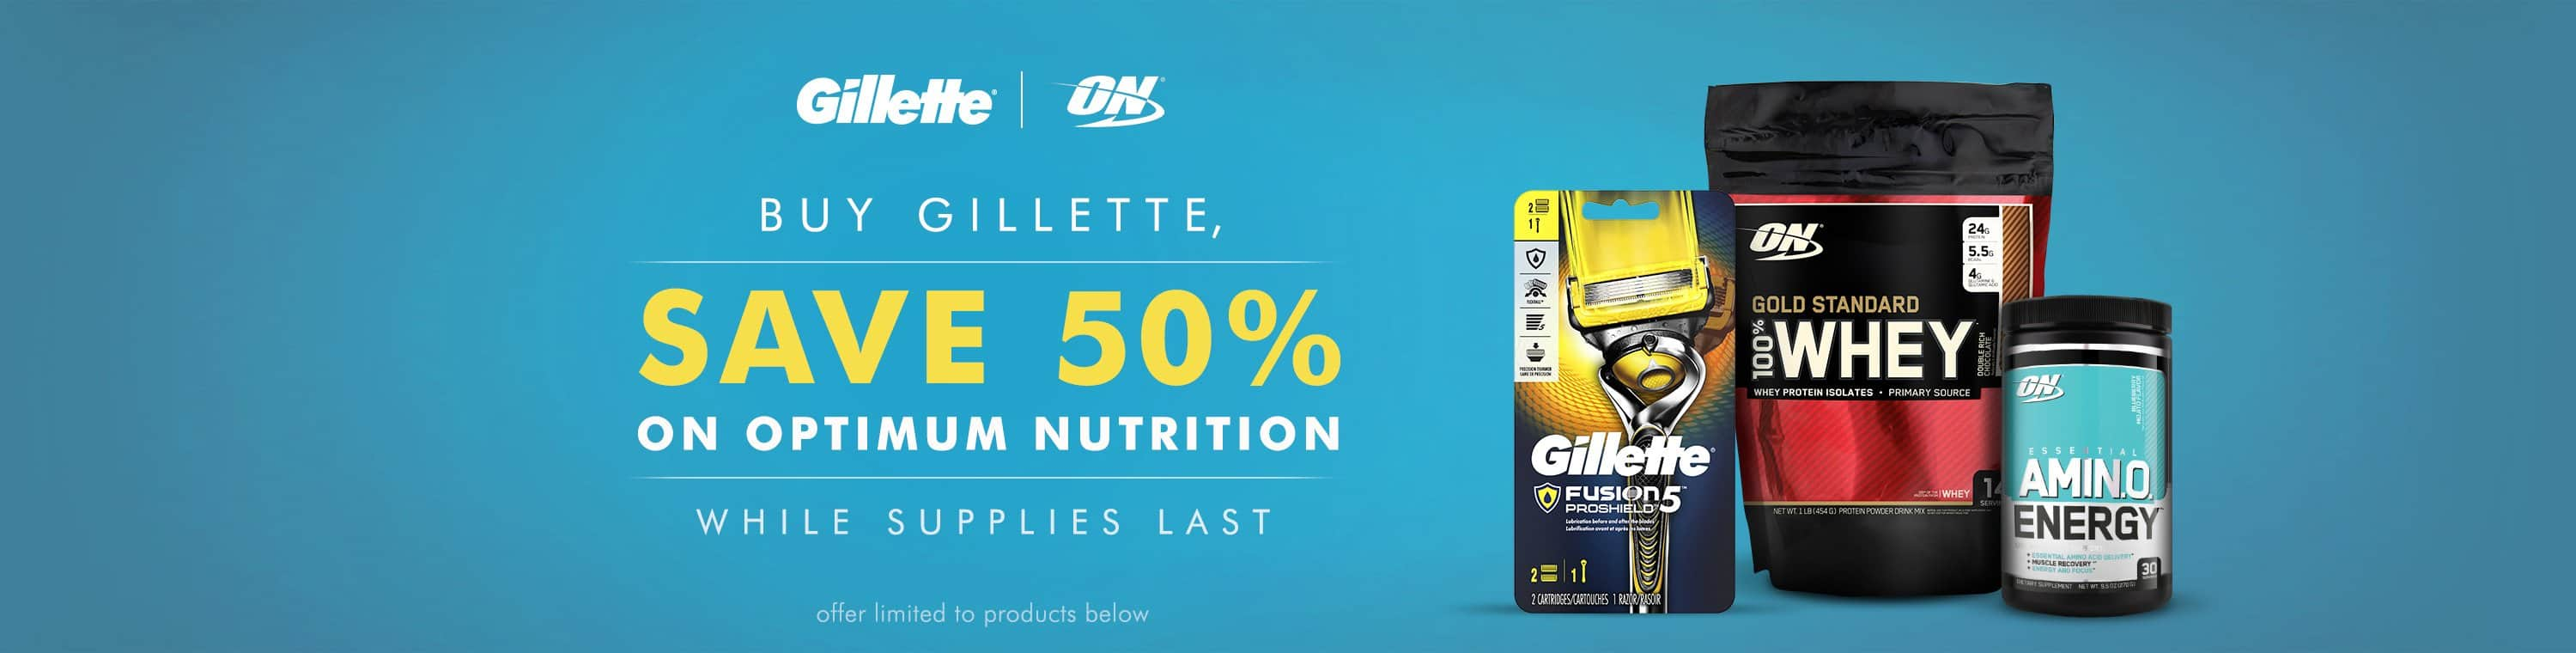 Gillette Fusion5 ProShield Men's Handle w/ 2 Razor Blade Refills + 1-lb Optimum Nutrition Gold Standard 100% Whey (Double Rich Chocolate)  $15.95